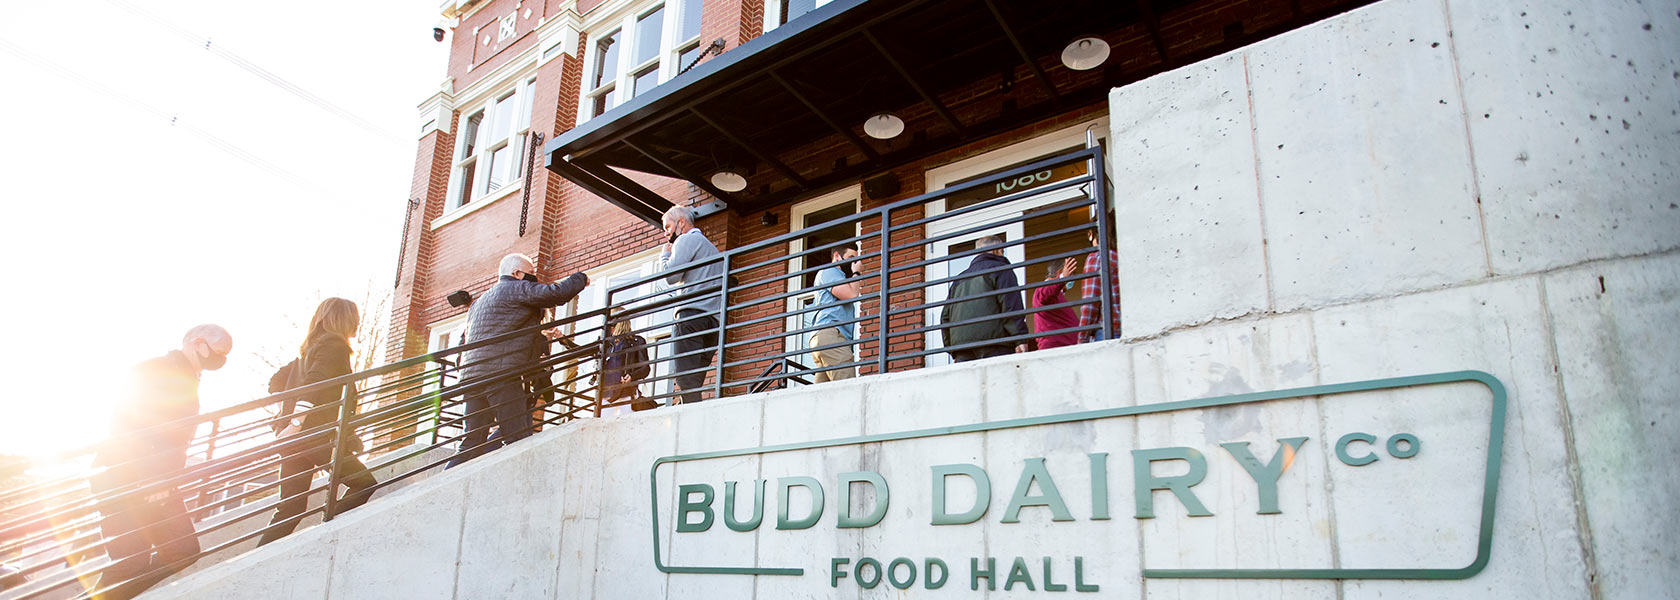 Budd Dairy Food Hall exterior